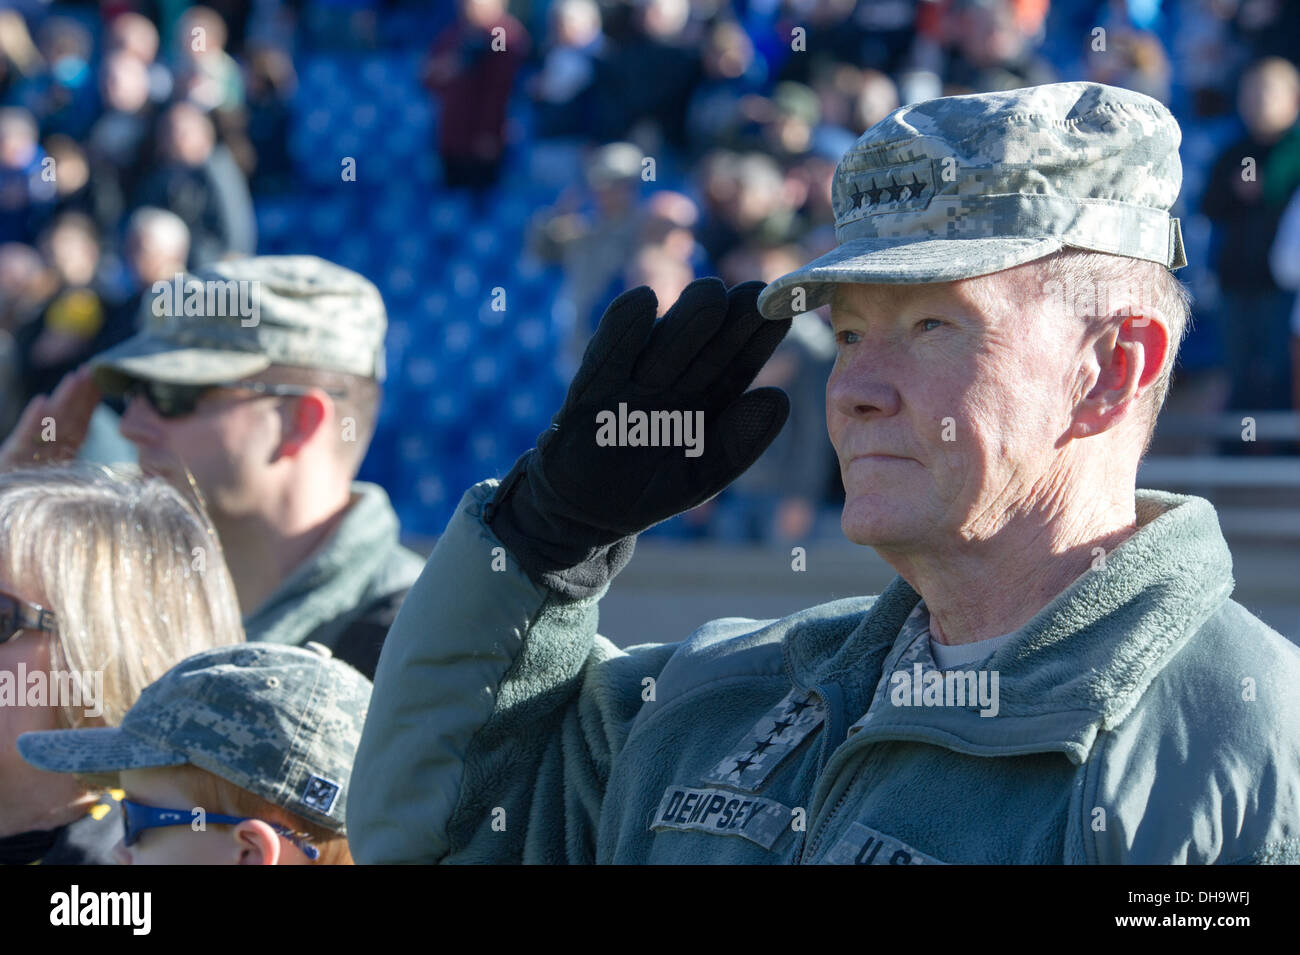 Chairman of the Joint Chiefs of Staff Gen. Martin E. Dempsey salutes at Falcon Stadium during an Air Force verses Army football - Stock Image